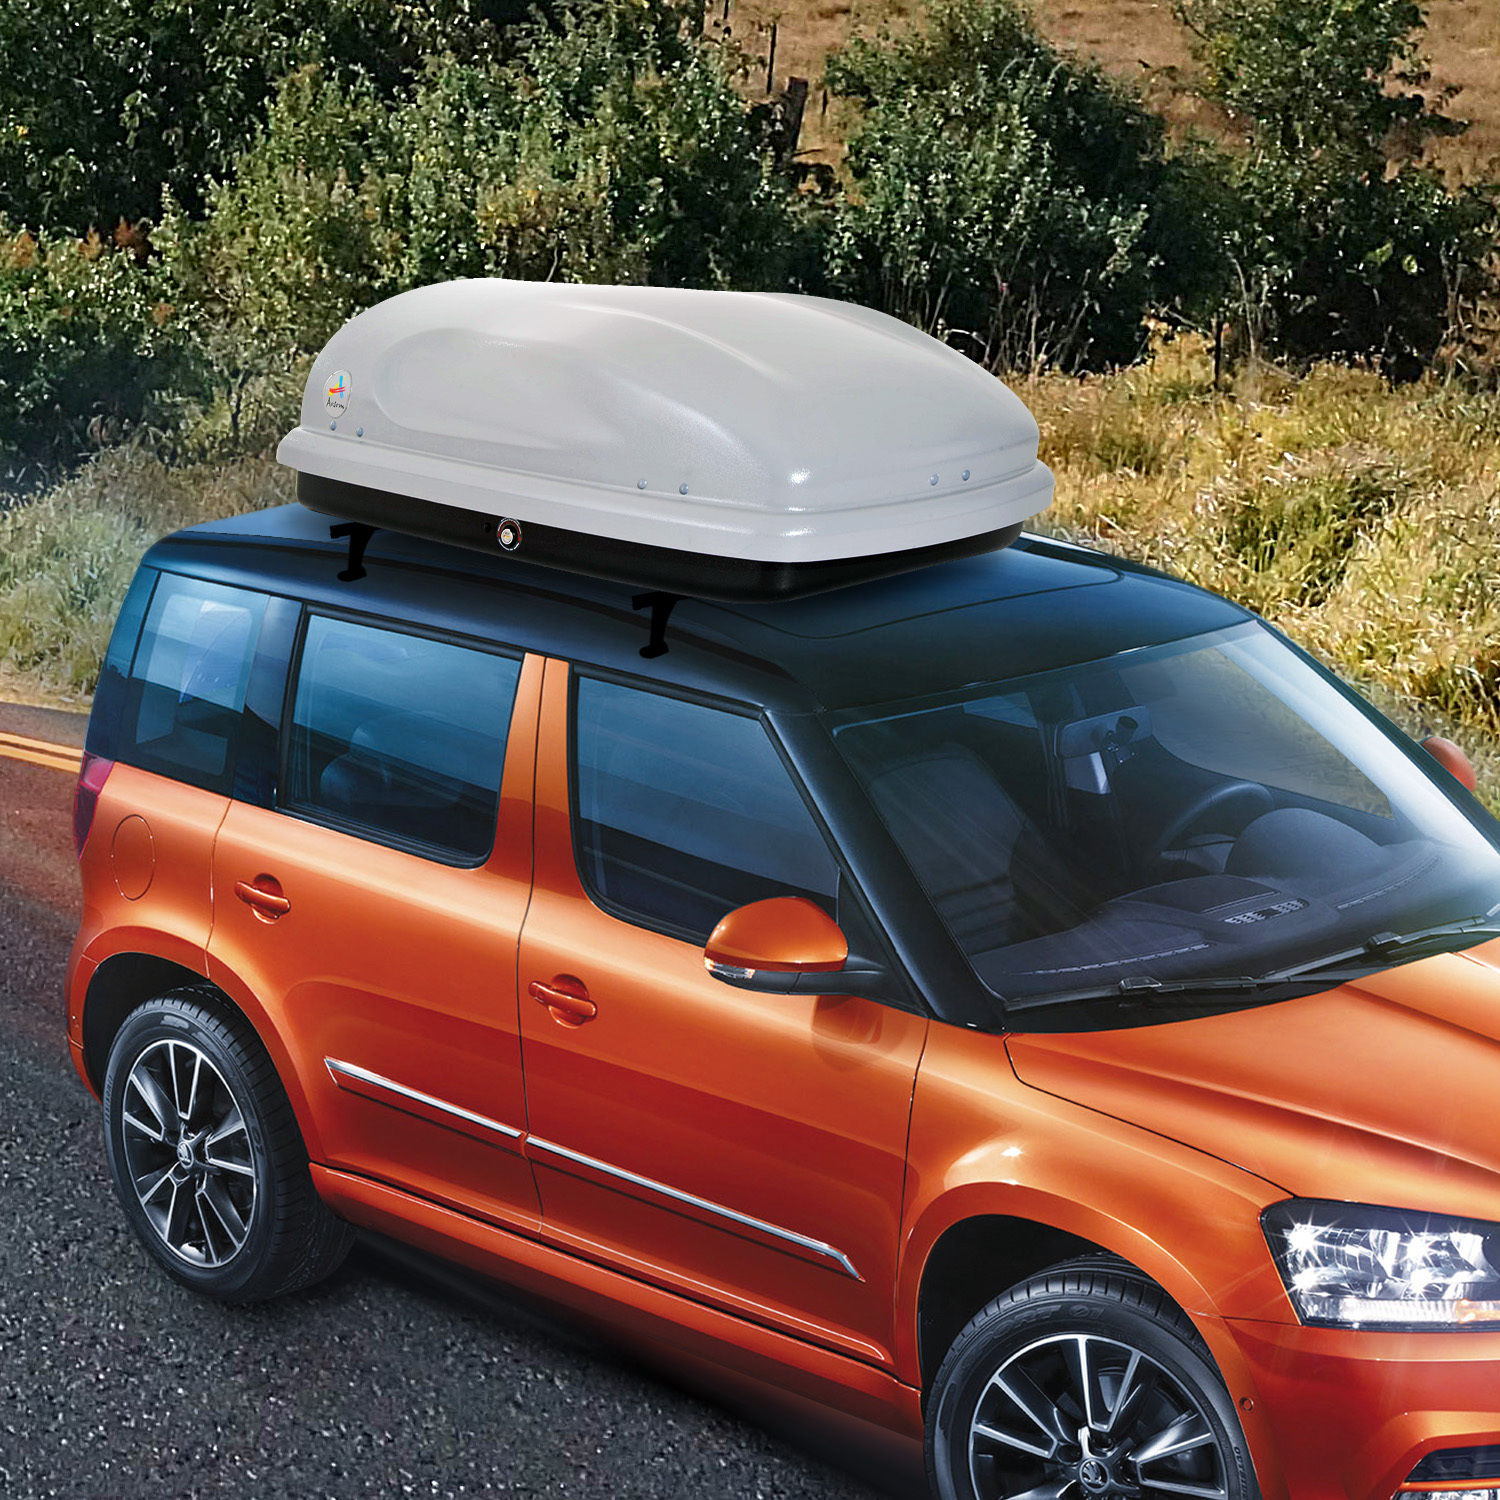 7 Cu Ft Cargo Box Car Roof Top Carrier Travel Luggage Storage